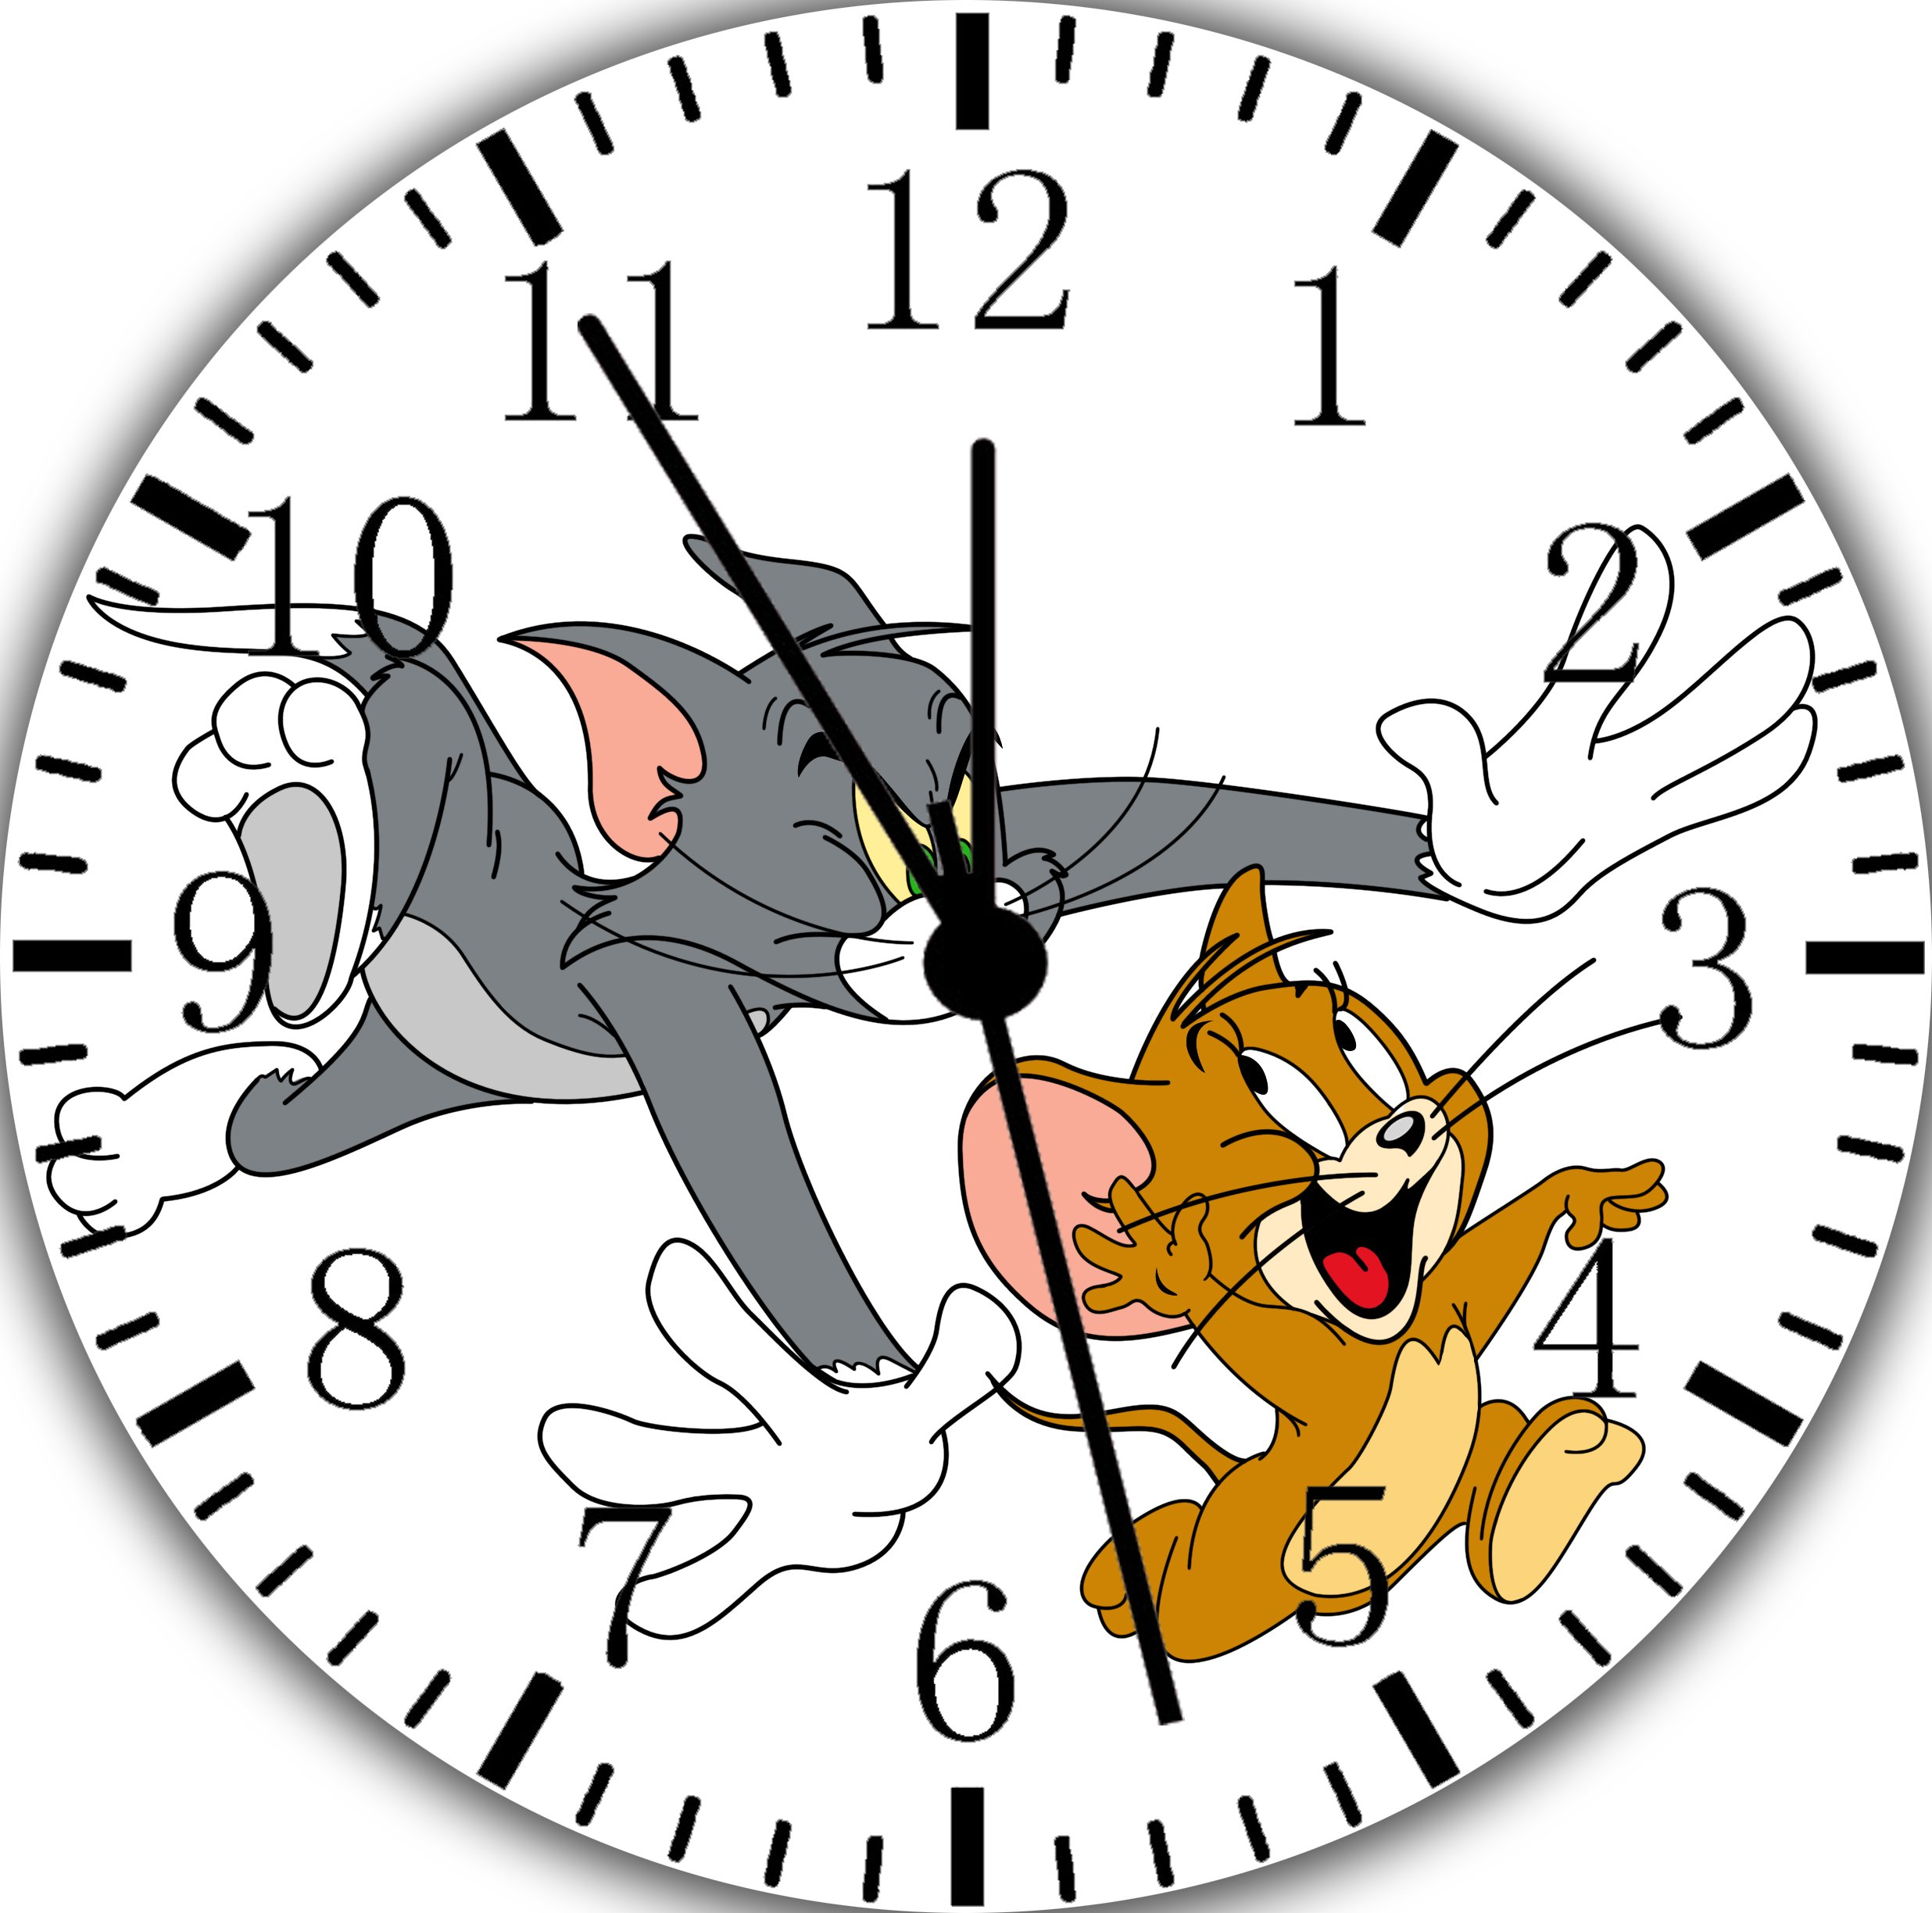 Tom and Jerry Frameless Borderless Wall Clock F58 Nice For Gift or Room Wall Decor